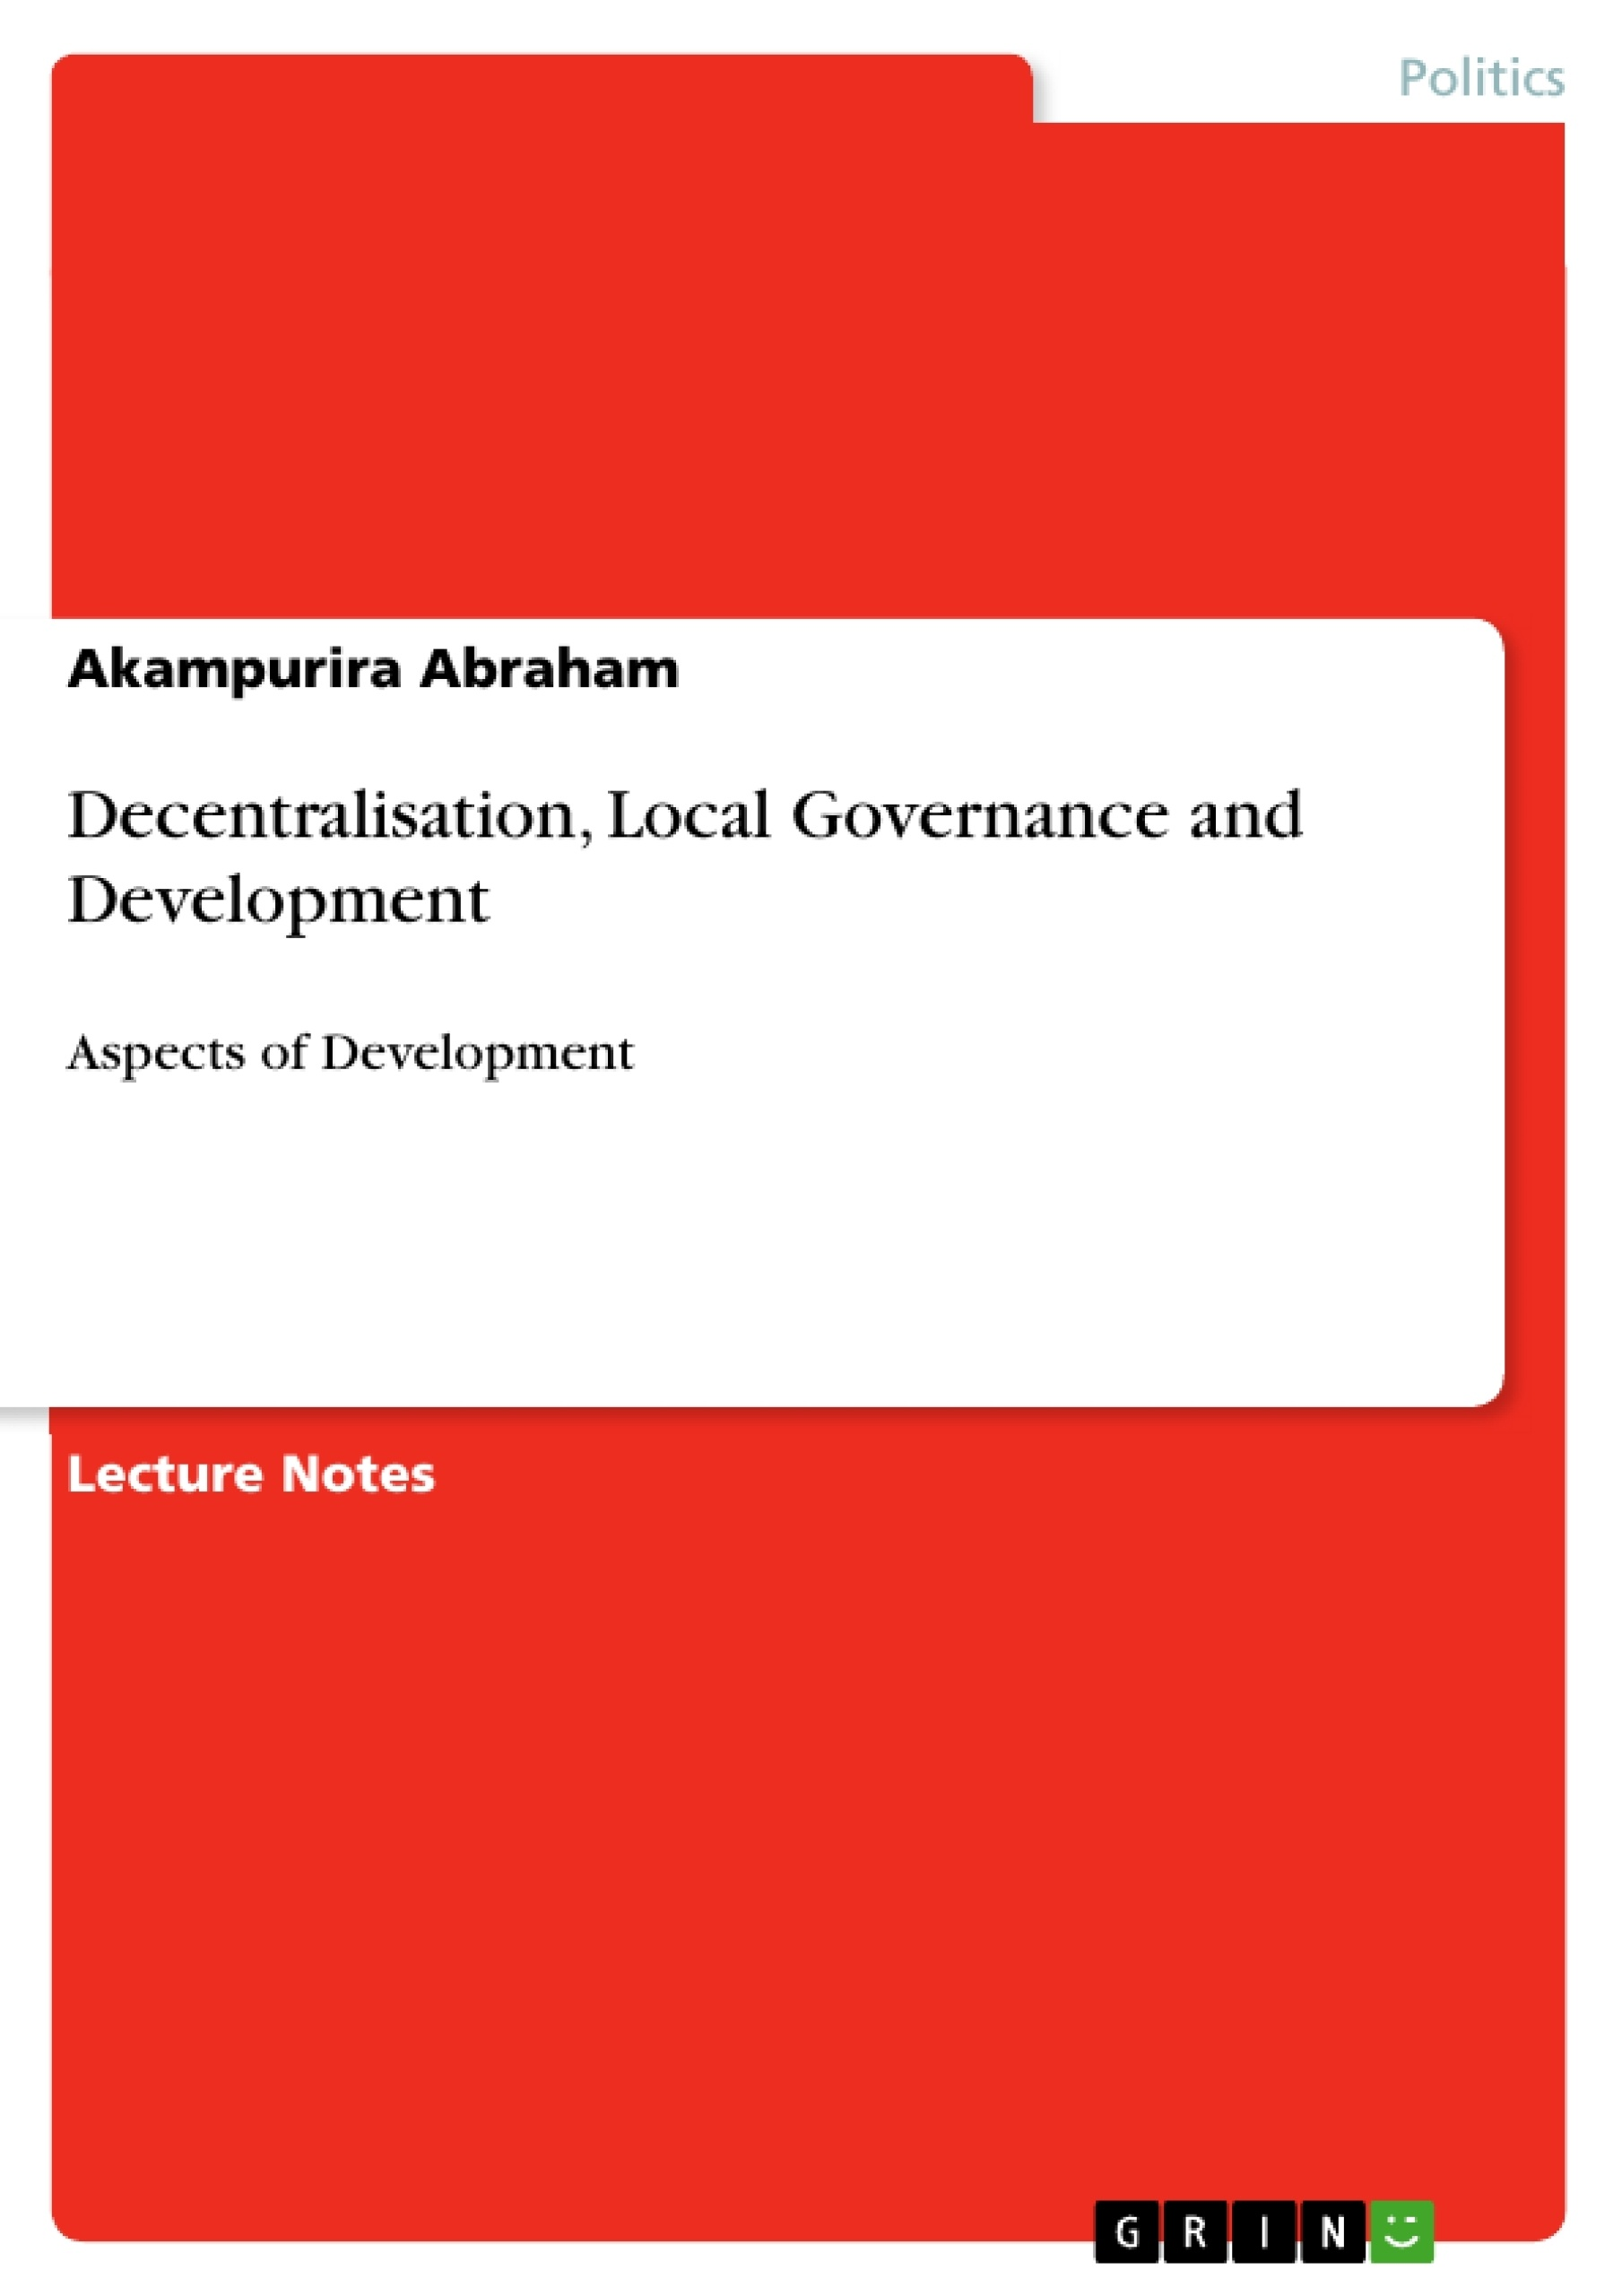 Title: Decentralisation, Local Governance and Development